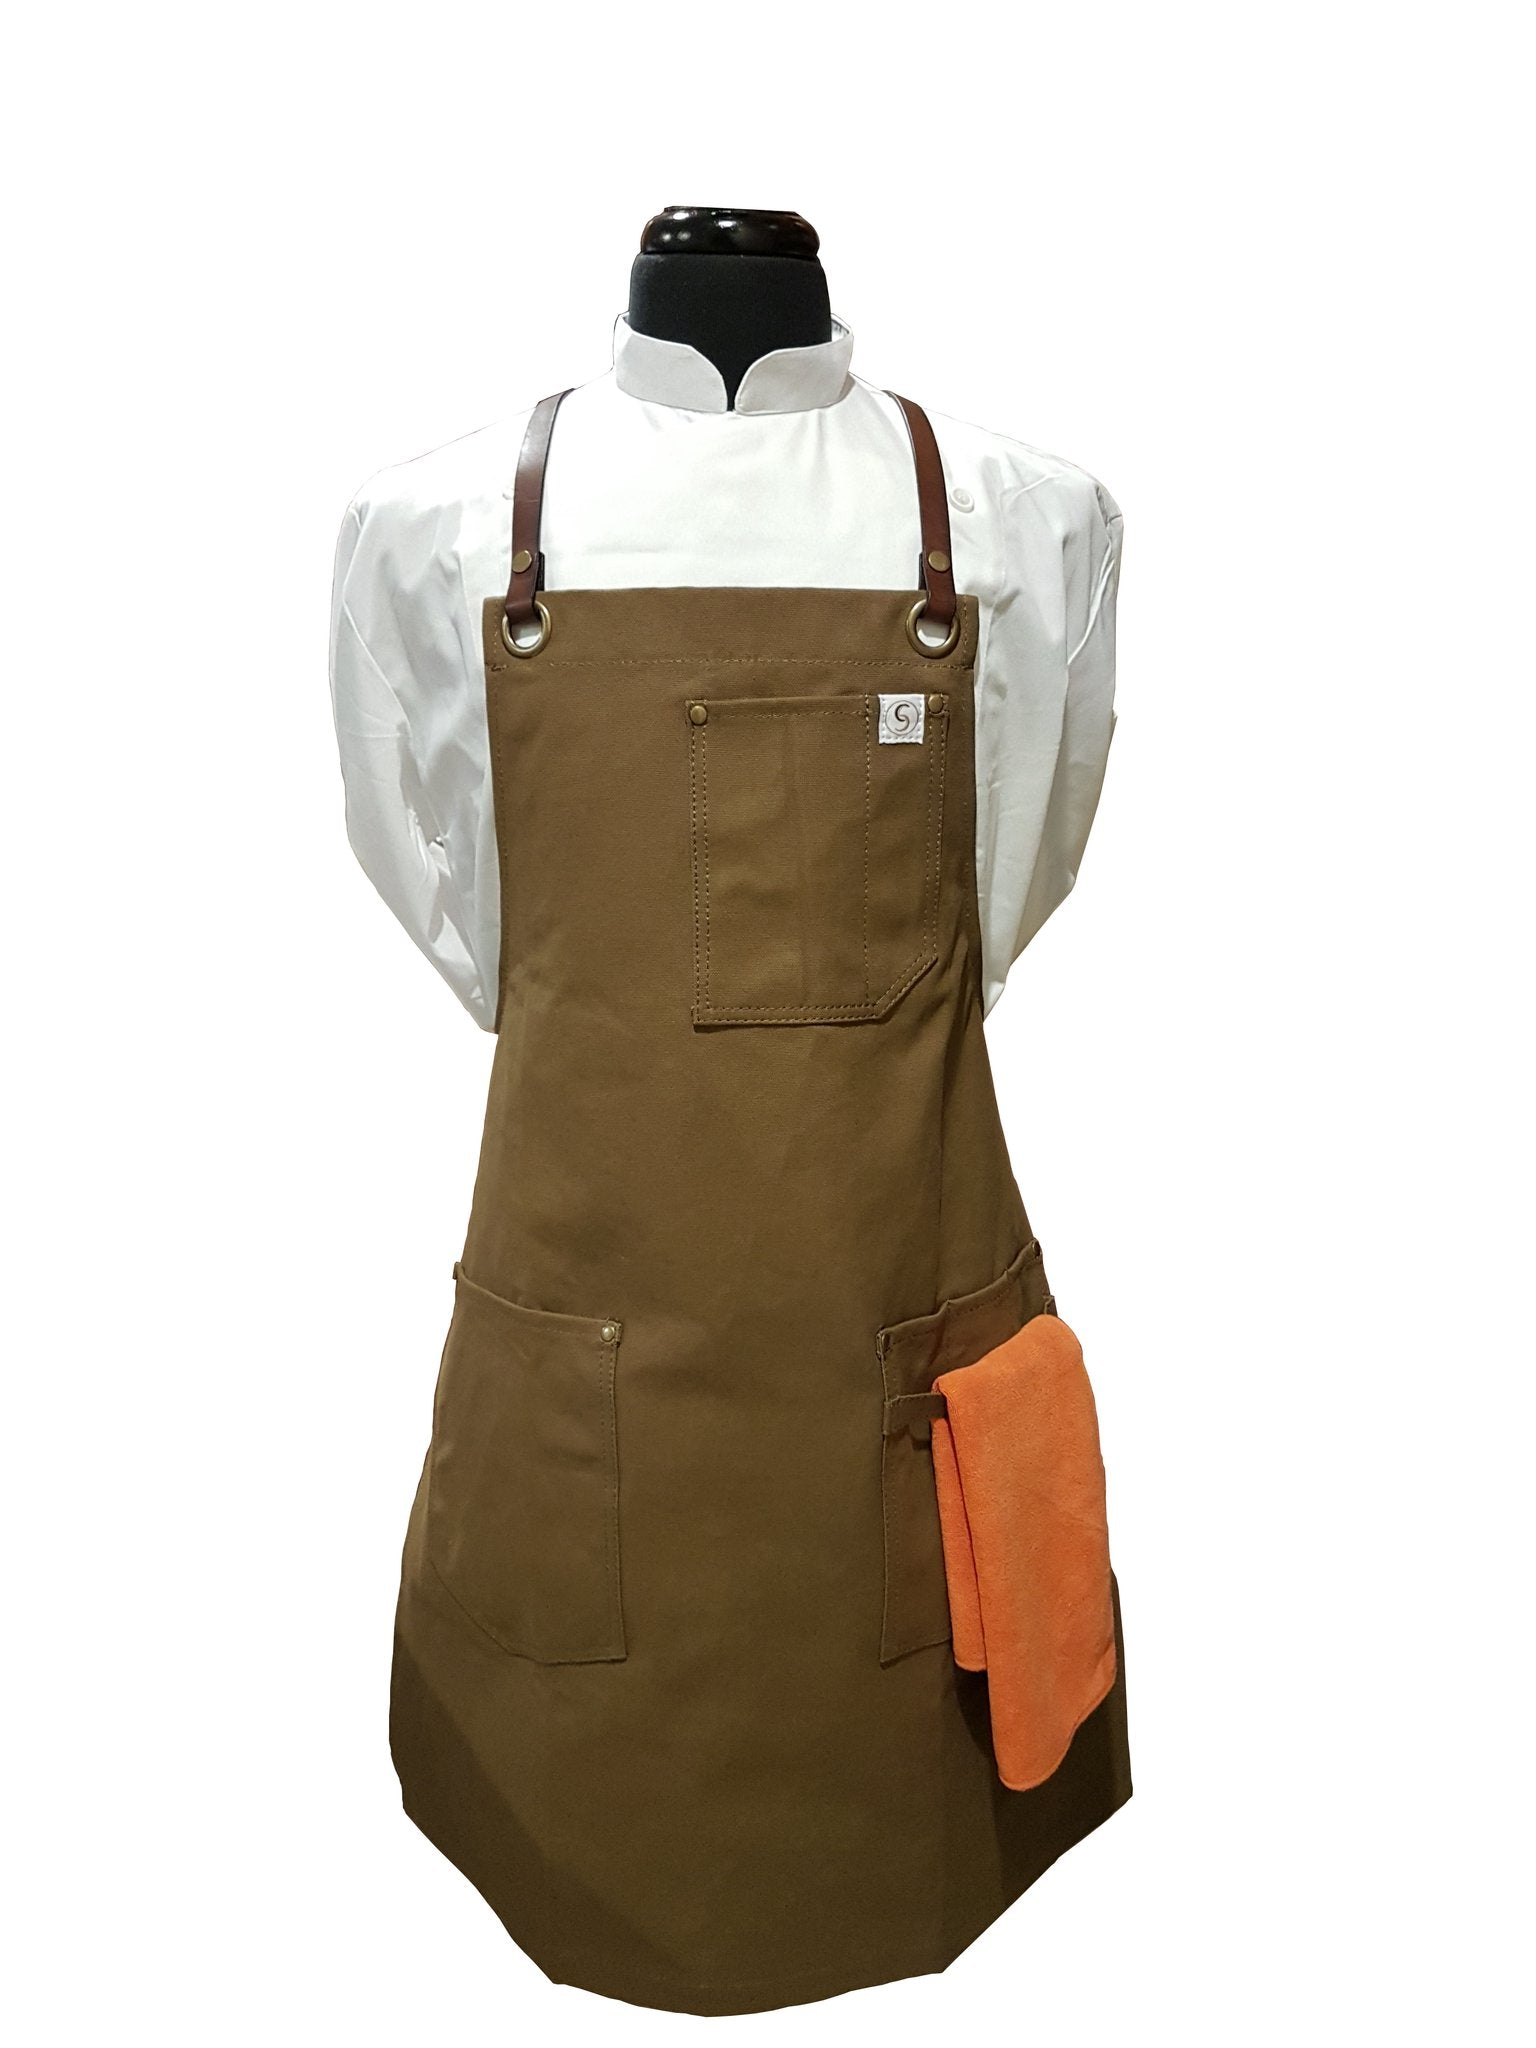 Chef S Satchel Leather Strap Waxed Canvas Aprons Khaki